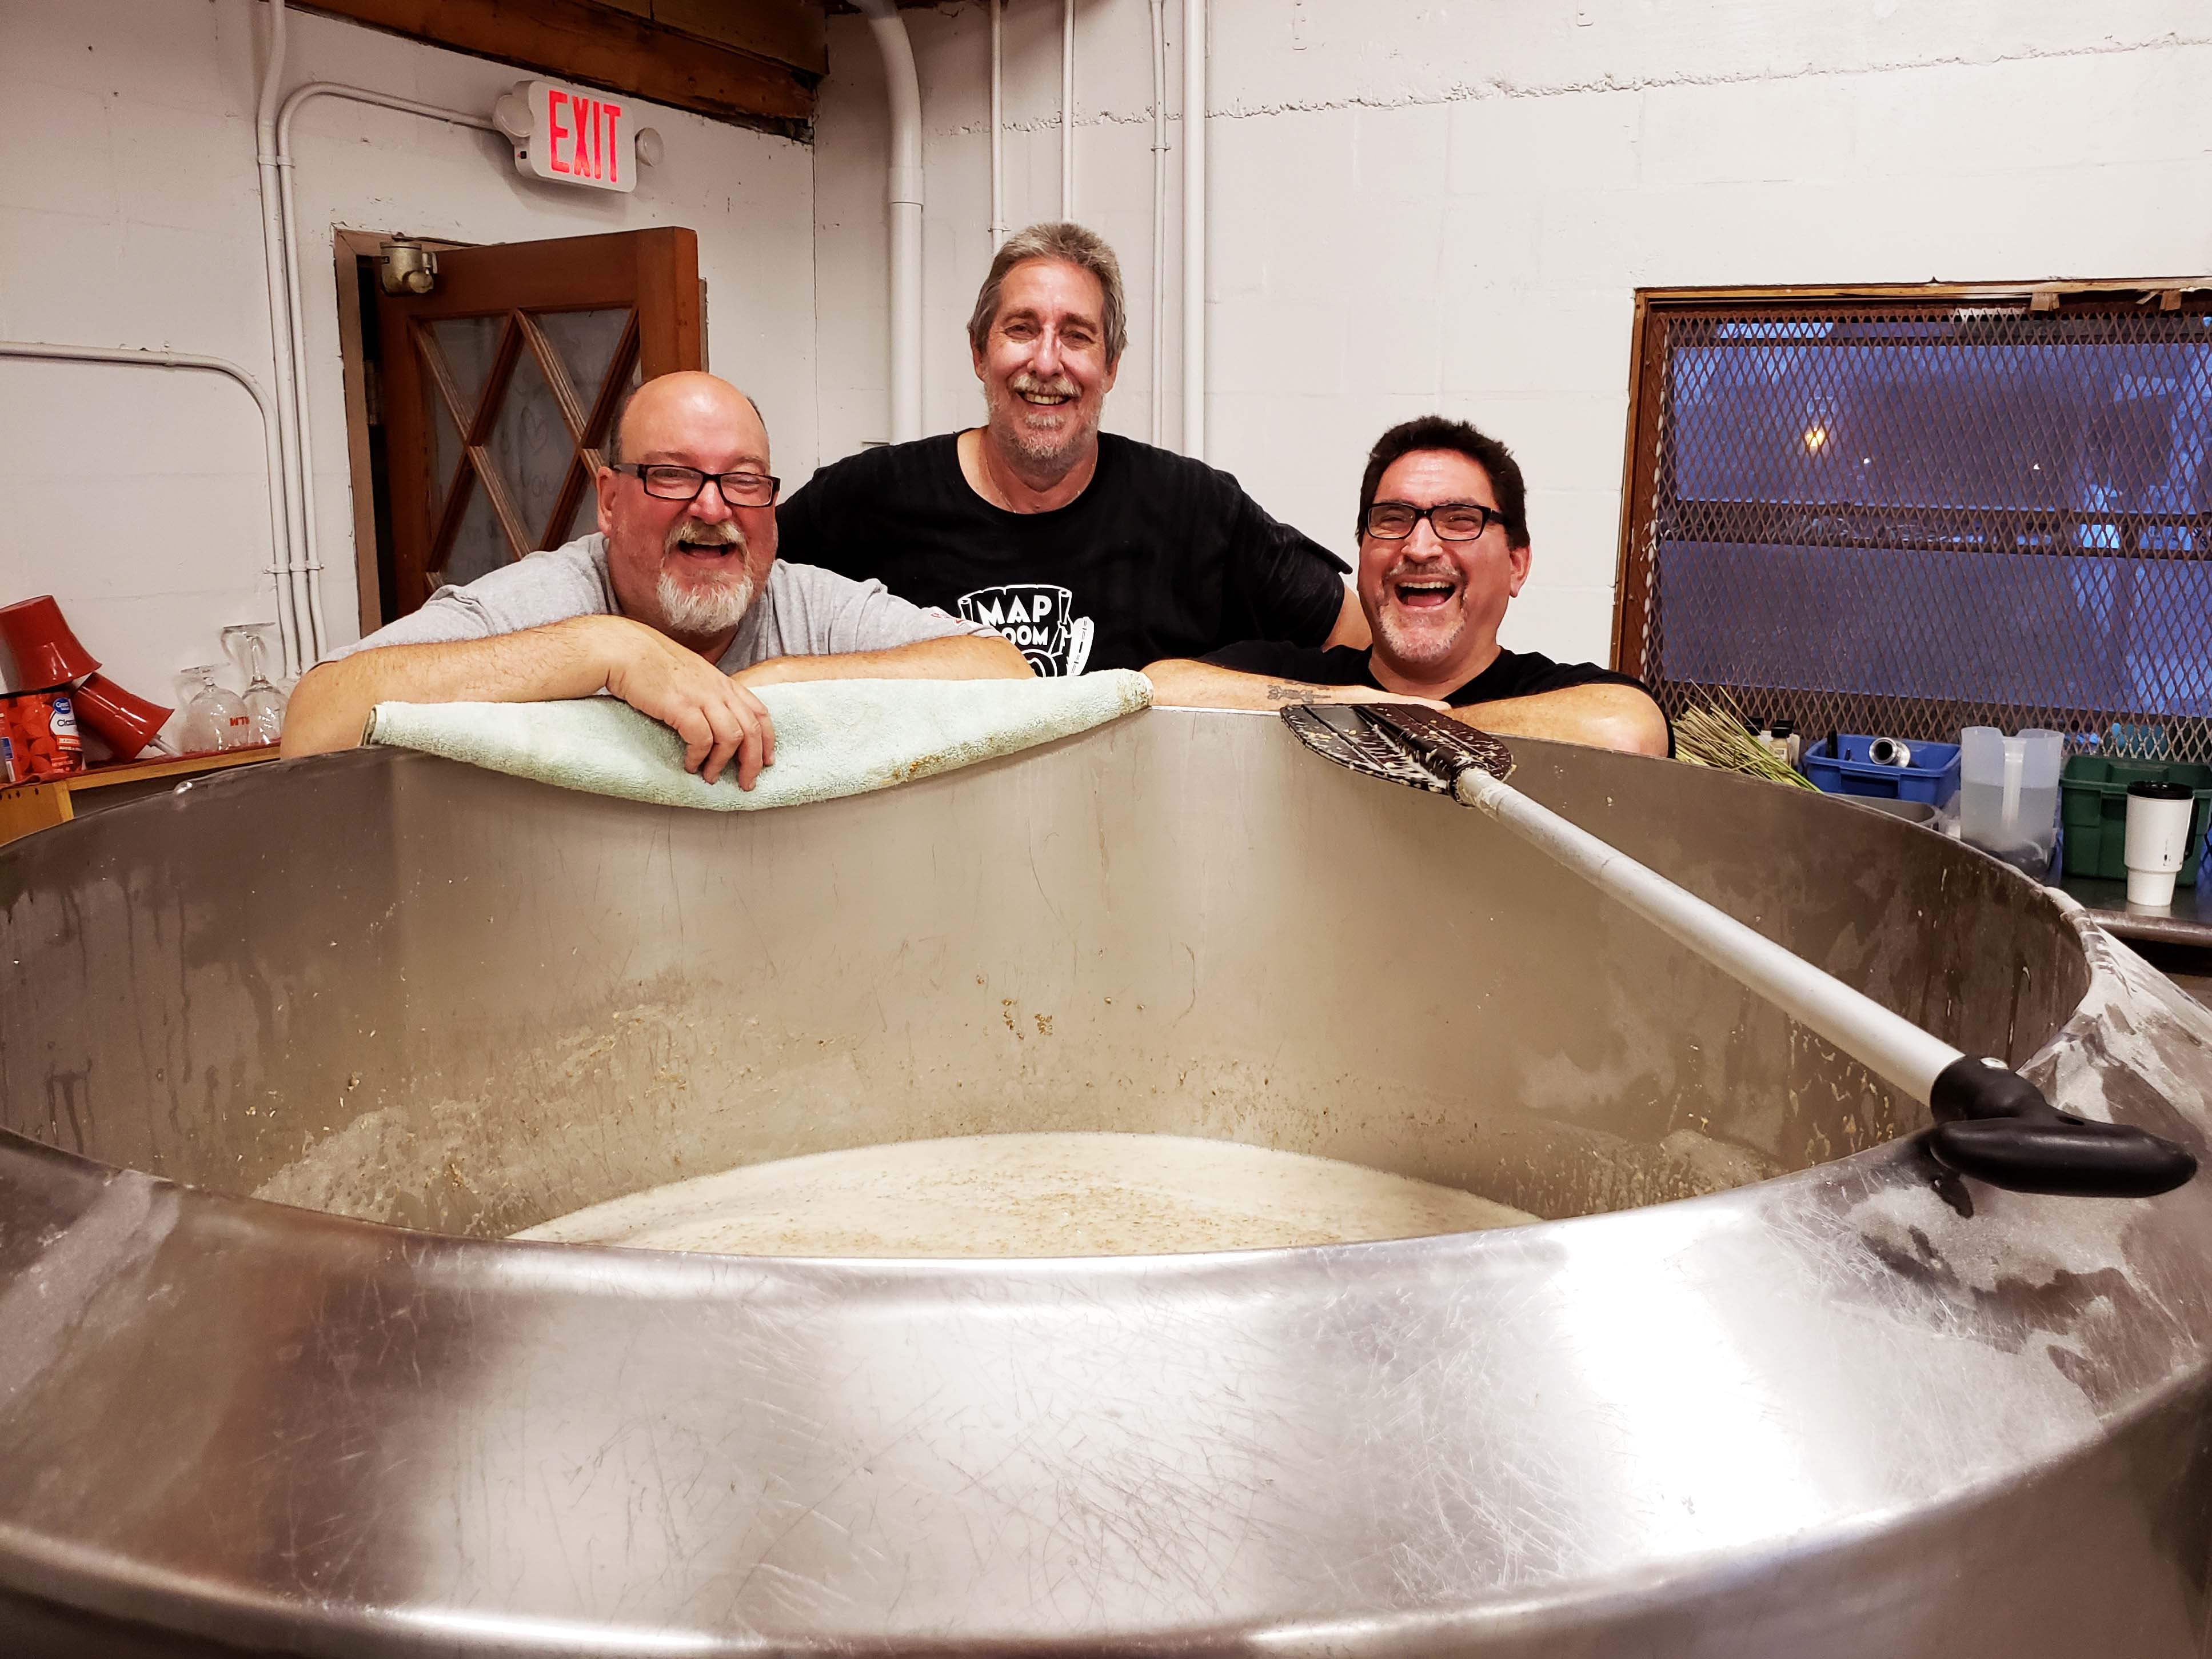 Brewing is fun, if you catch the brewers before the heat of a June day in Florida.